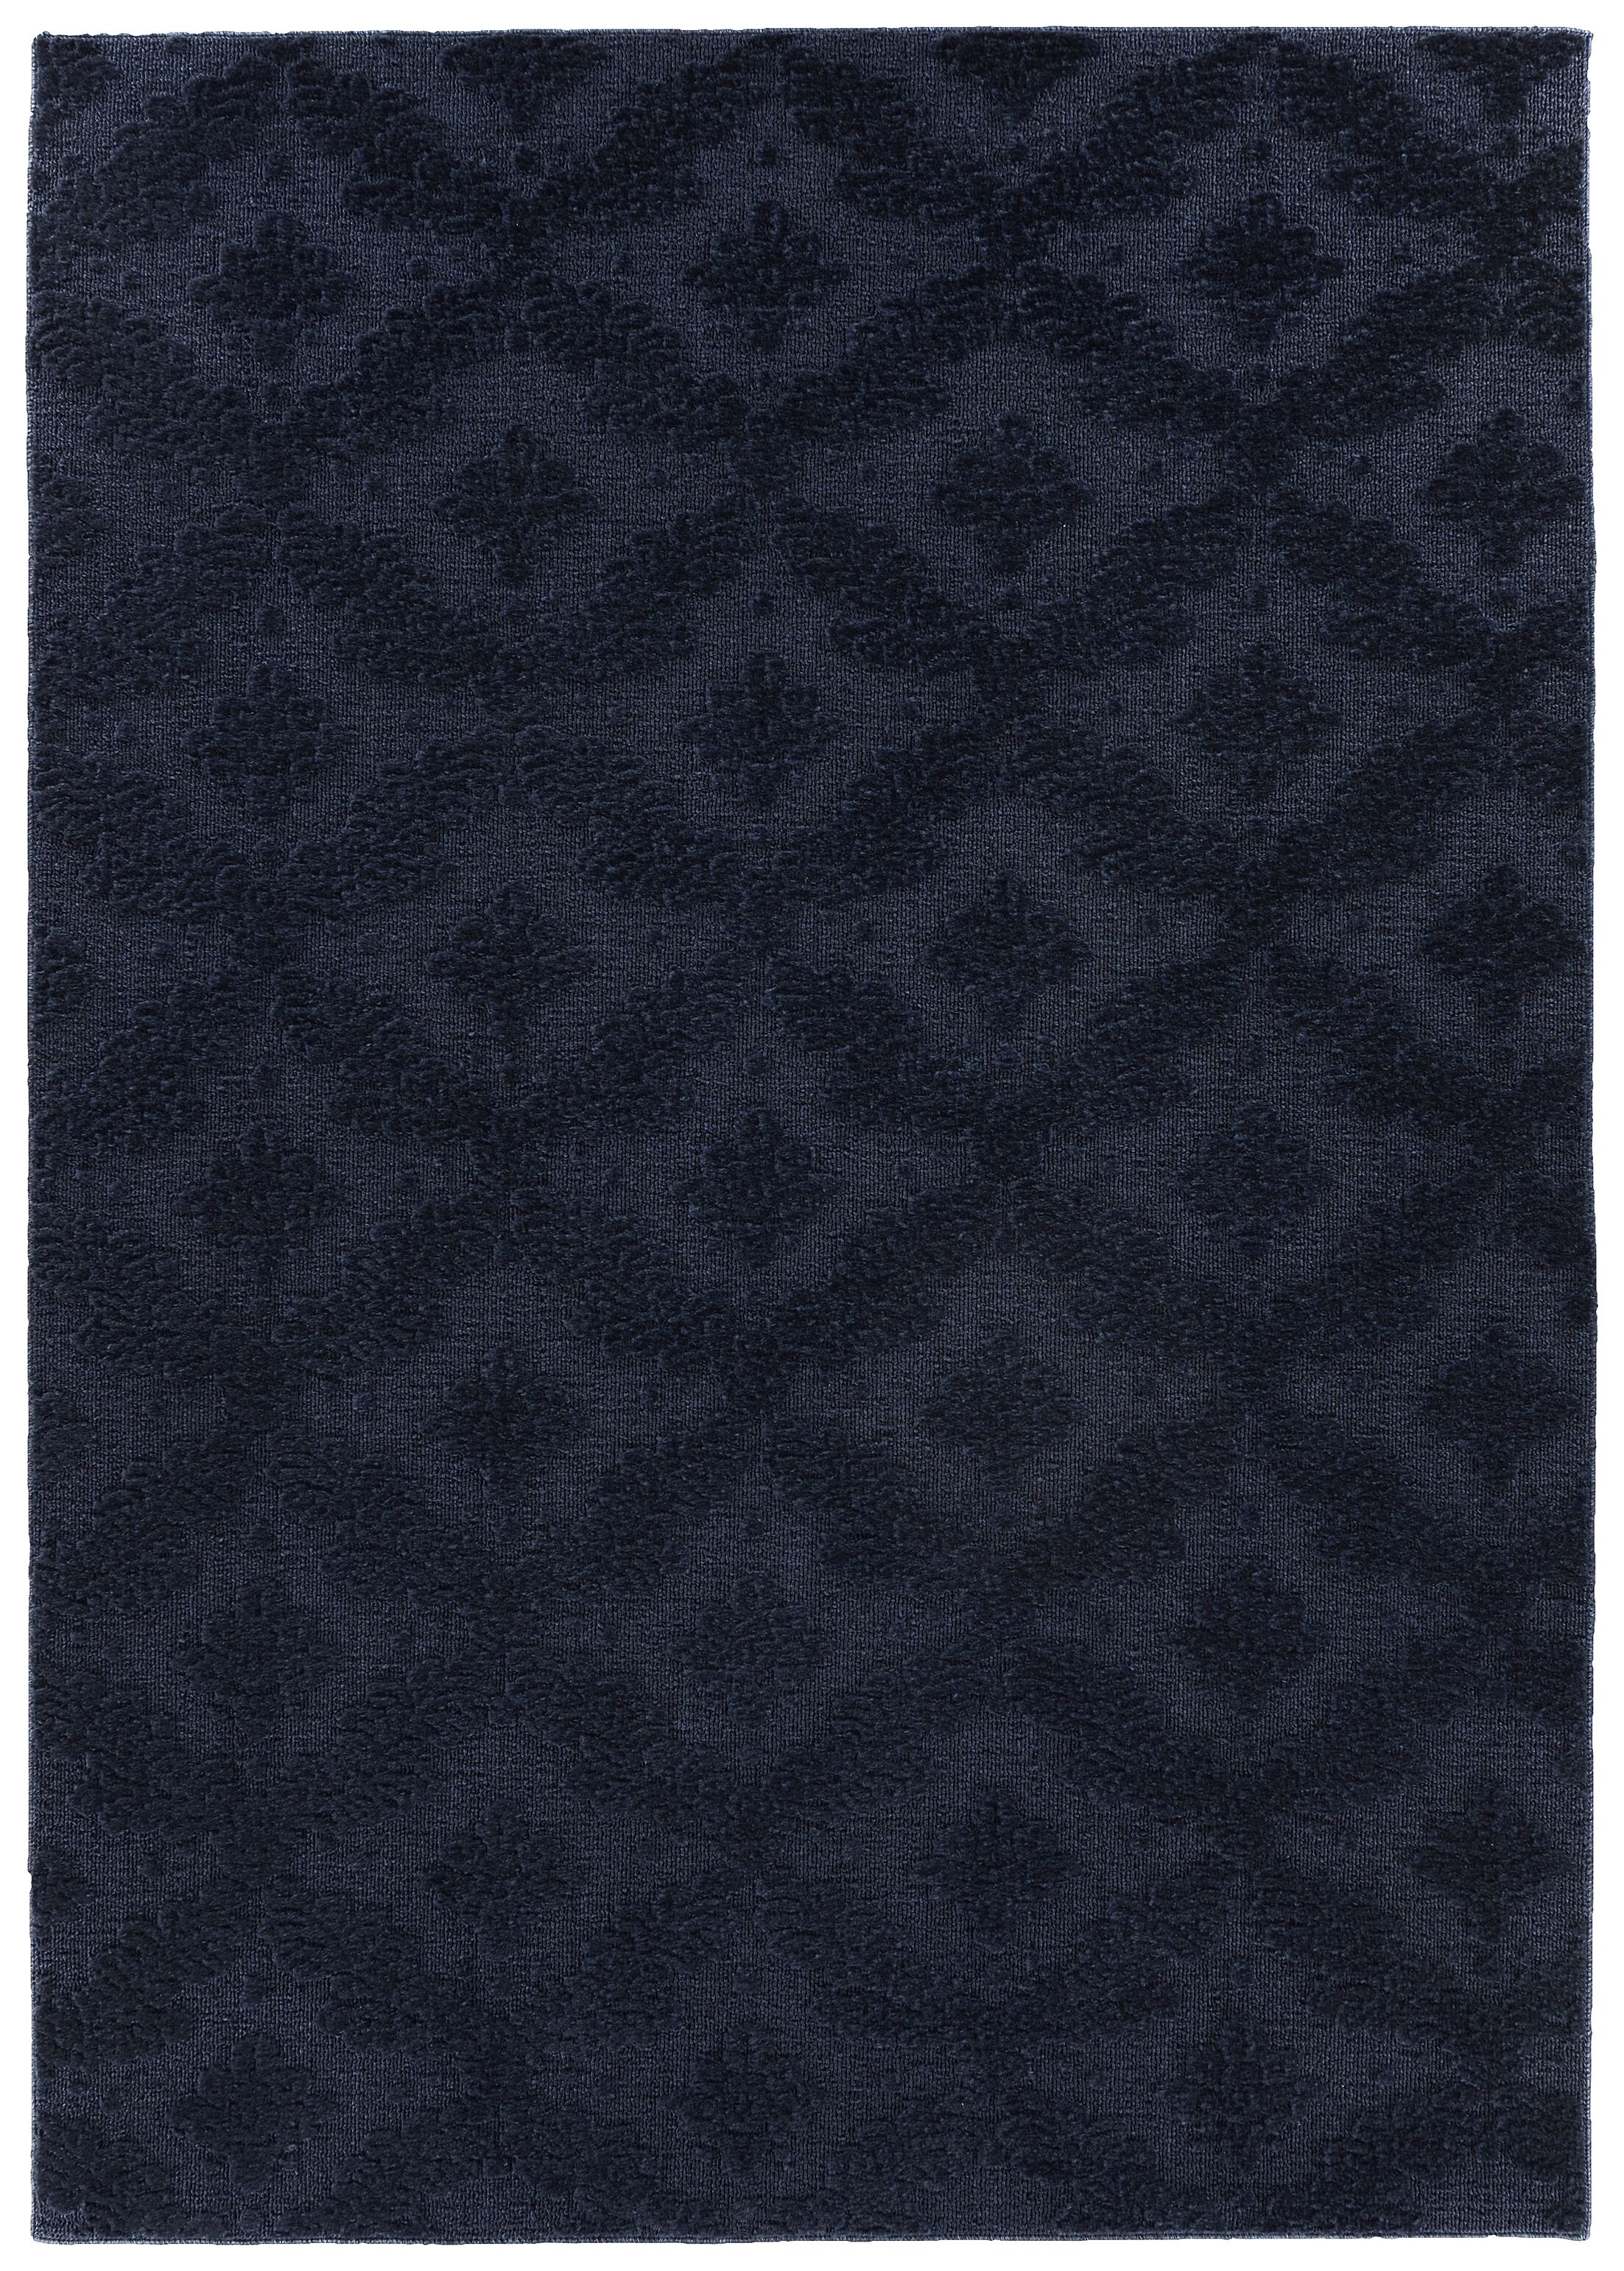 Spafford Blue Area Rug Rug Size: Rectangle 9' x 12'